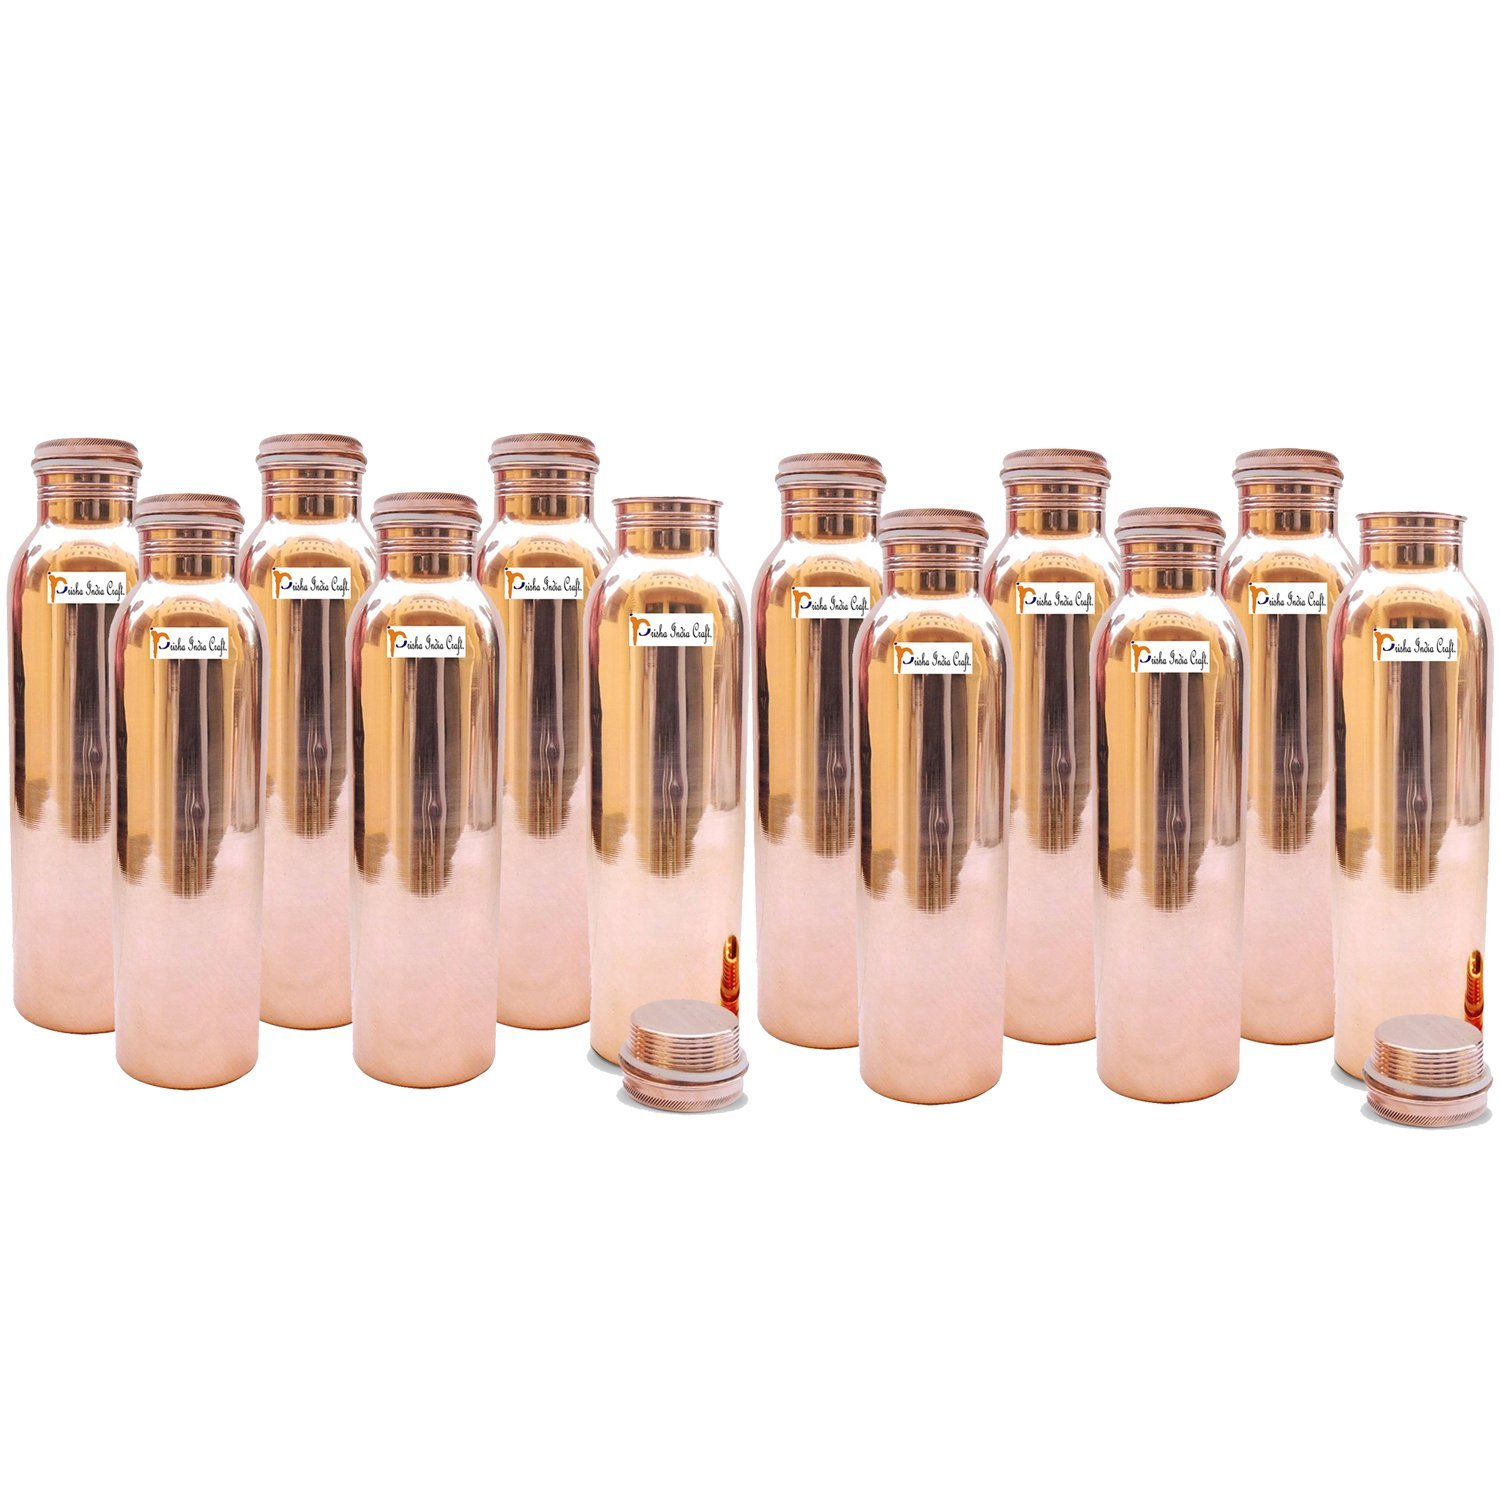 900ml / 30oz - Set of 12 - Prisha India Craft ® Pure Copper Water Bottle for Health Benefits - Water Bottles | Joint Free, Handmade - Christmas Gift